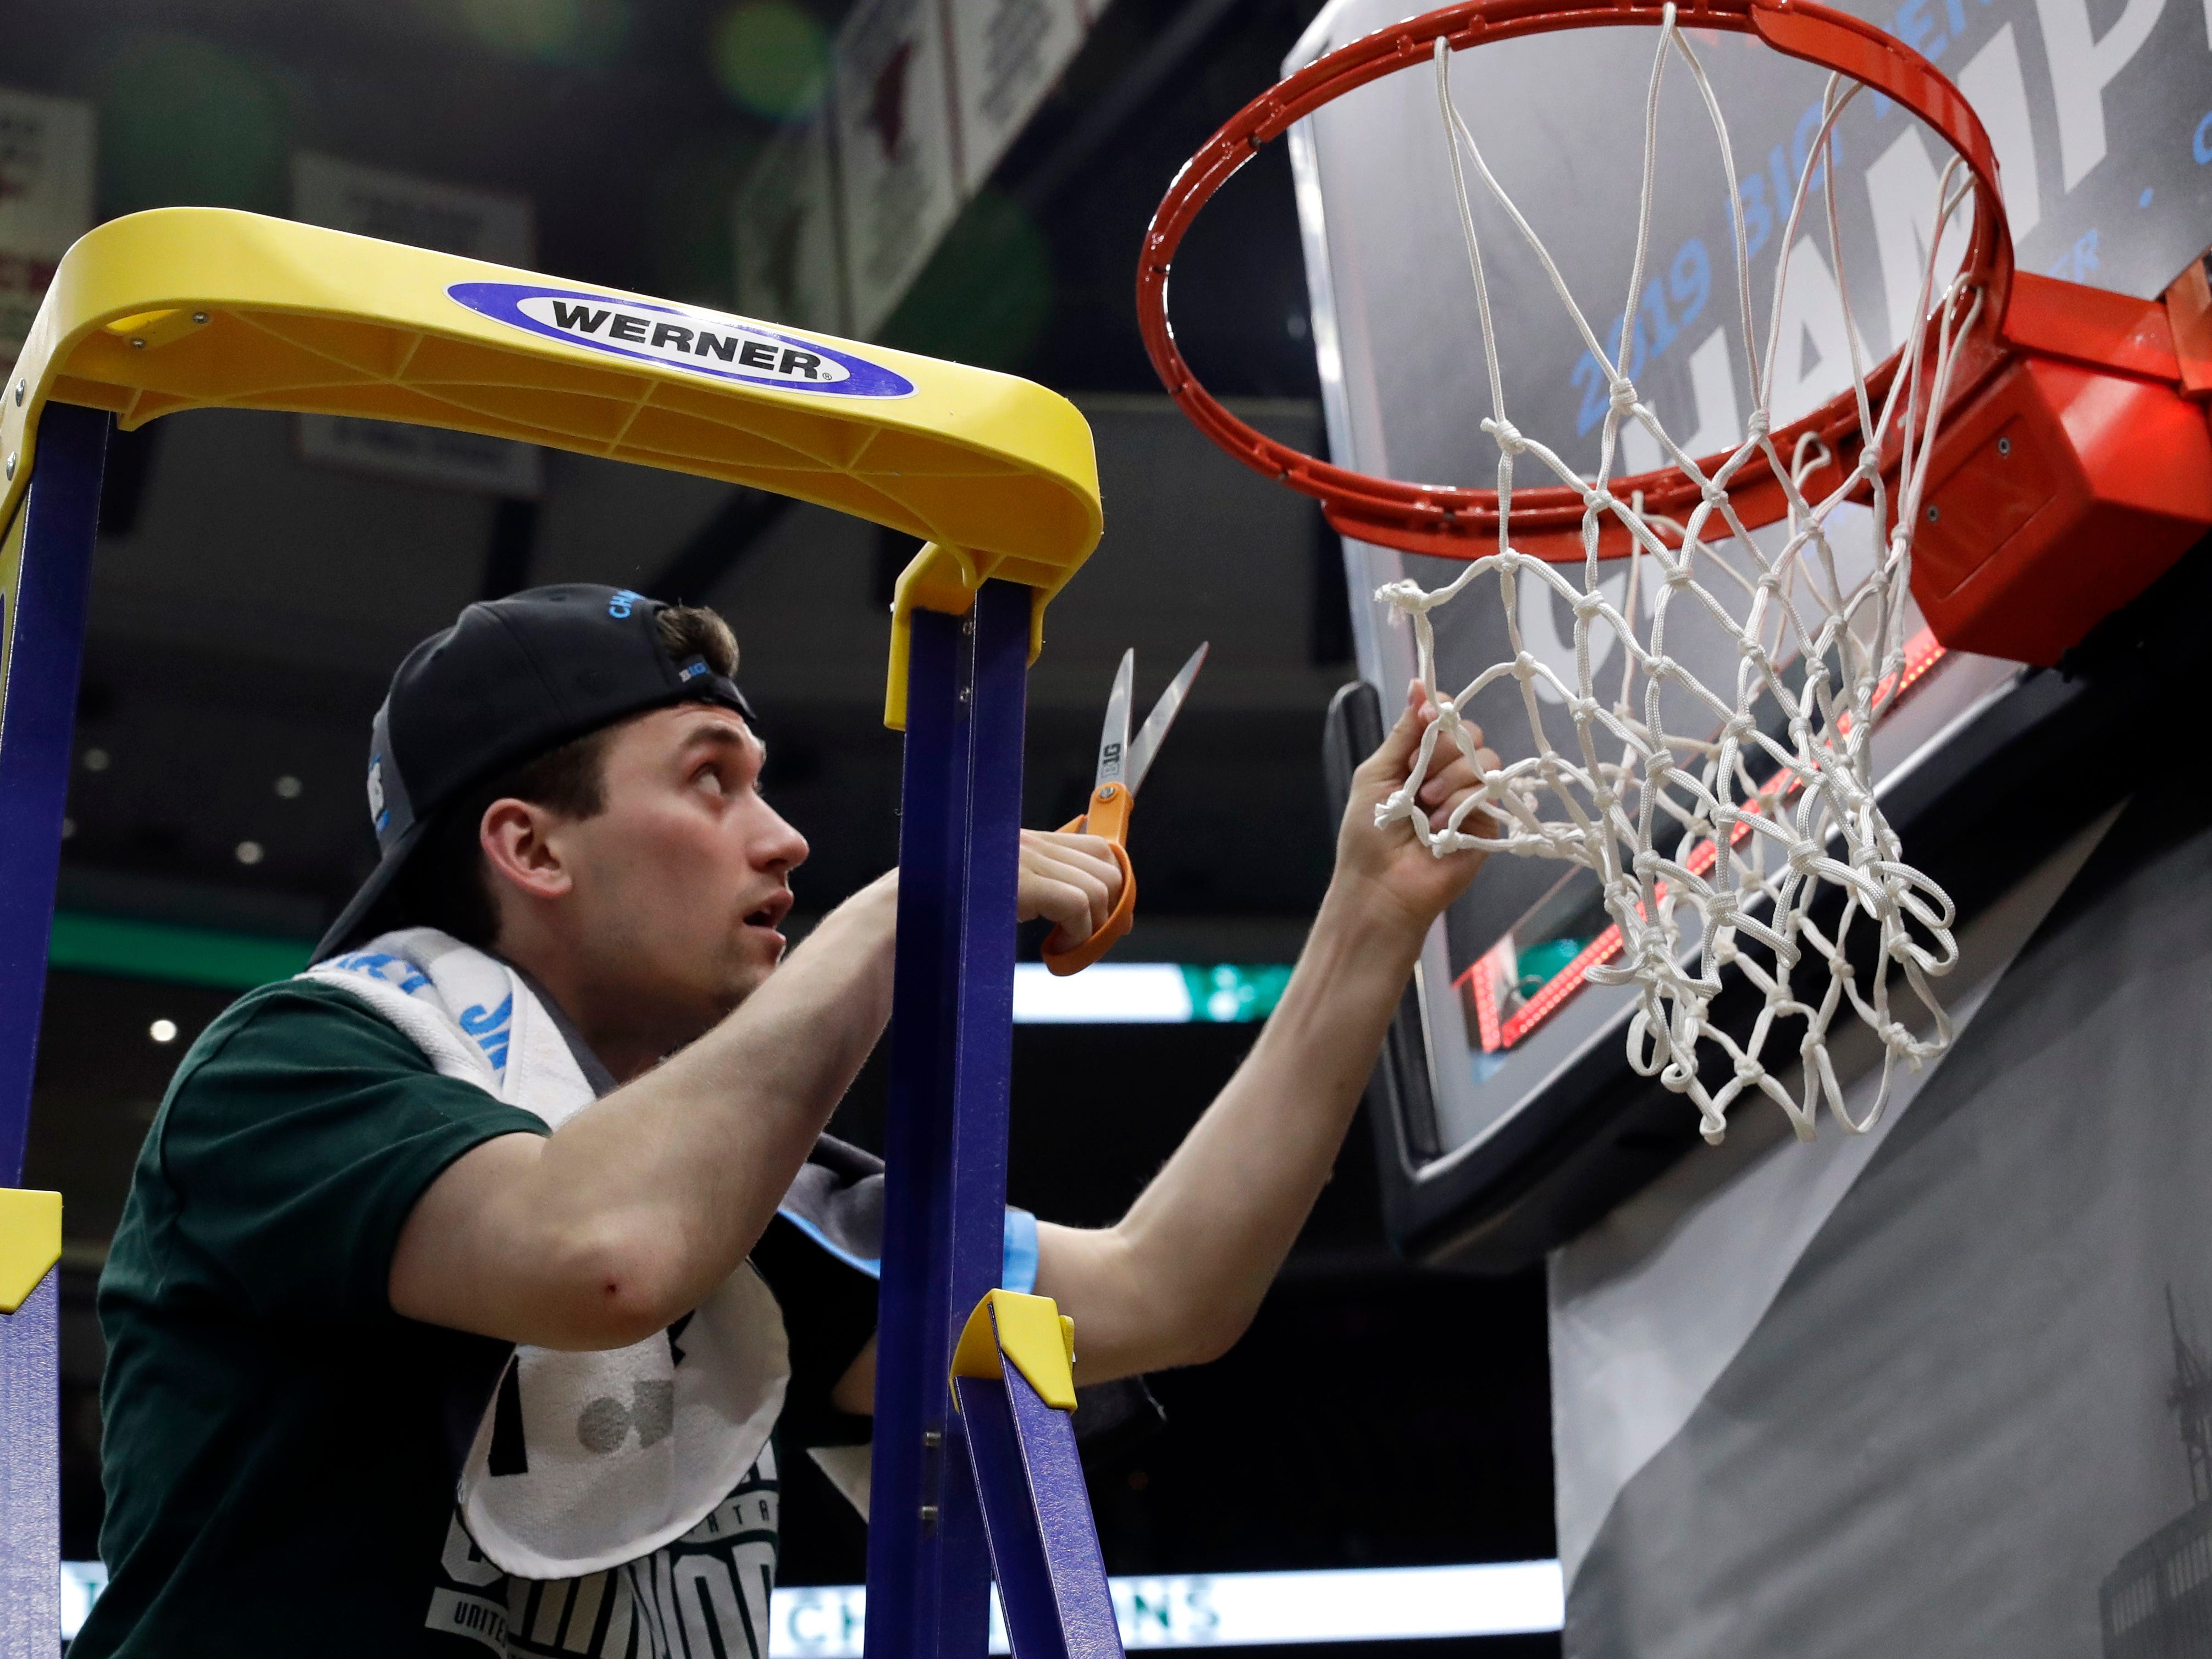 Michigan State's Foster Loyer cuts a piece of the net after defeating Michigan 65-60 in an NCAA college basketball championship game in the Big Ten Conference tournament, Sunday, March 17, 2019, in Chicago. (AP Photo/Nam Y. Huh)